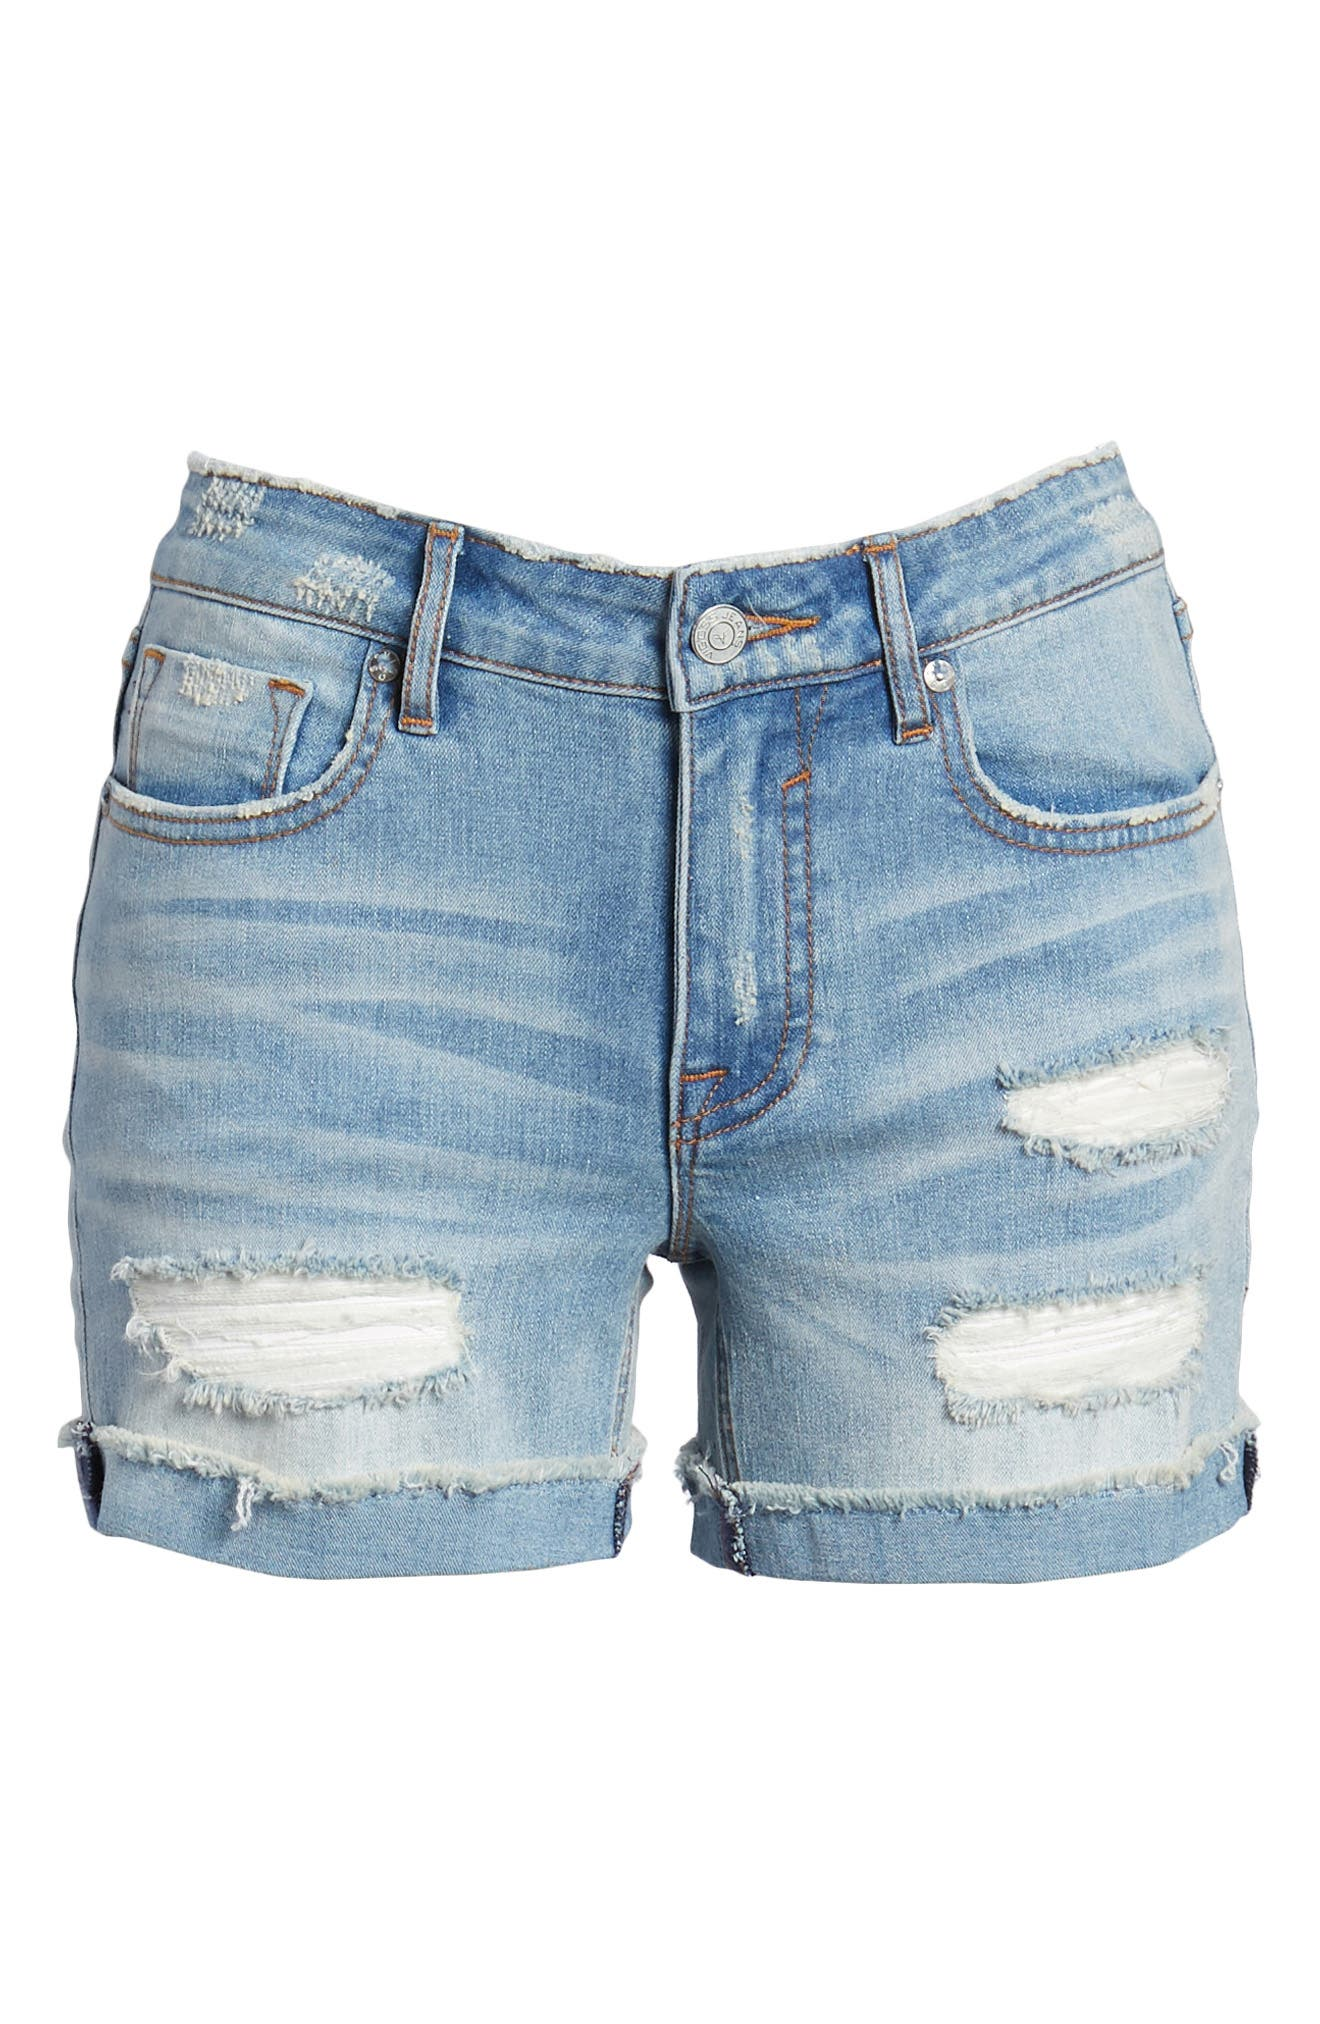 Marley Denim Shorts,                             Alternate thumbnail 7, color,                             461